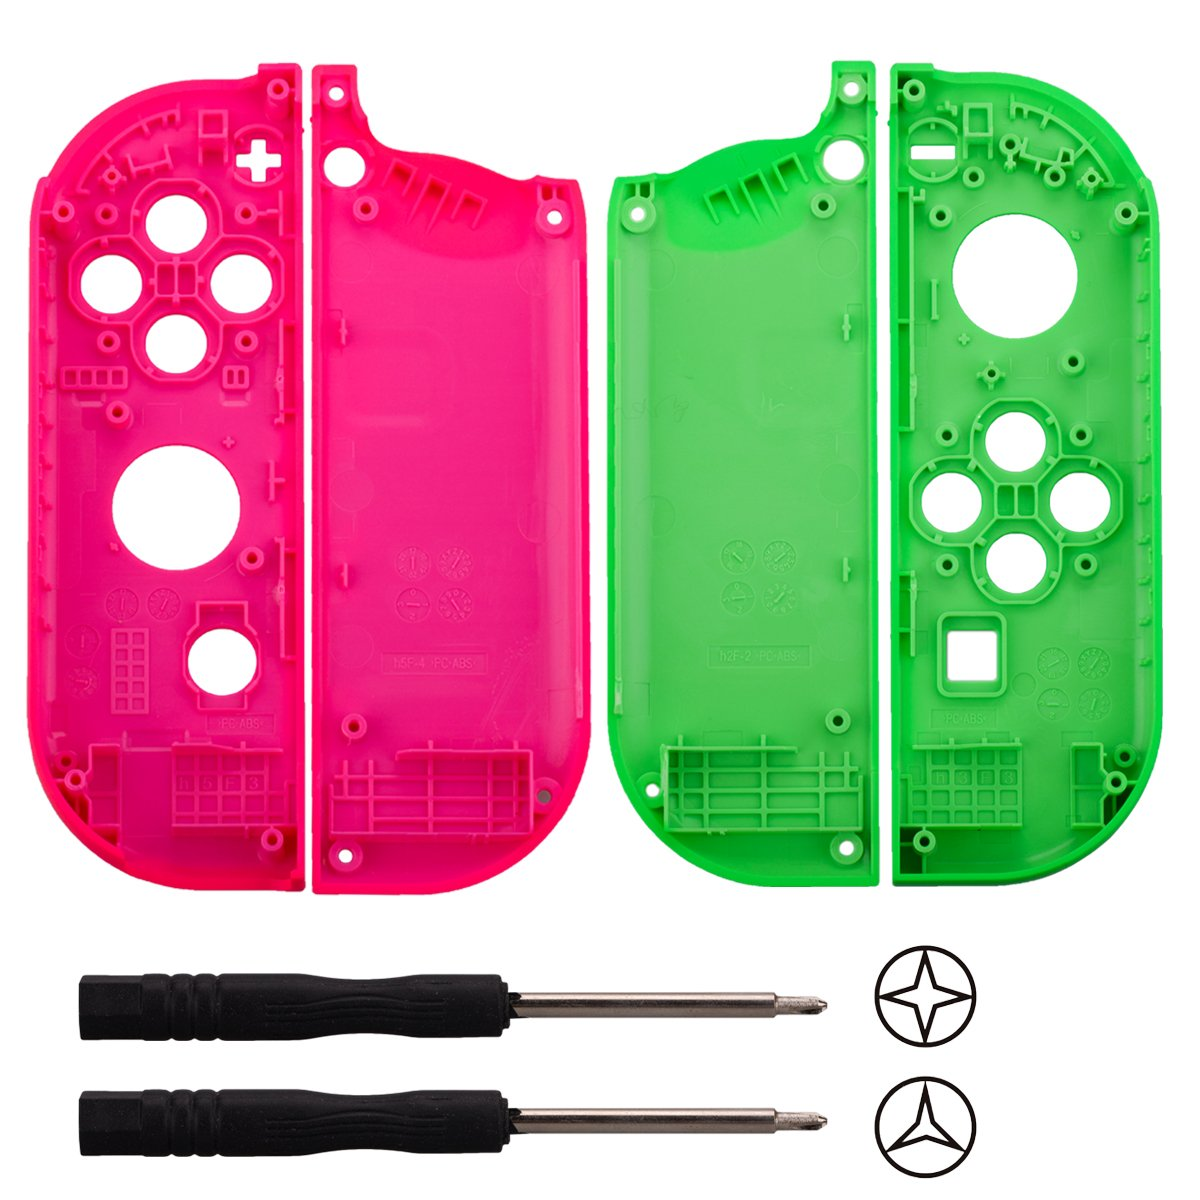 YoRHa plastic replacement repair kit theme case shell for switch Joy-Con controller (pink+green) With Screwdriver